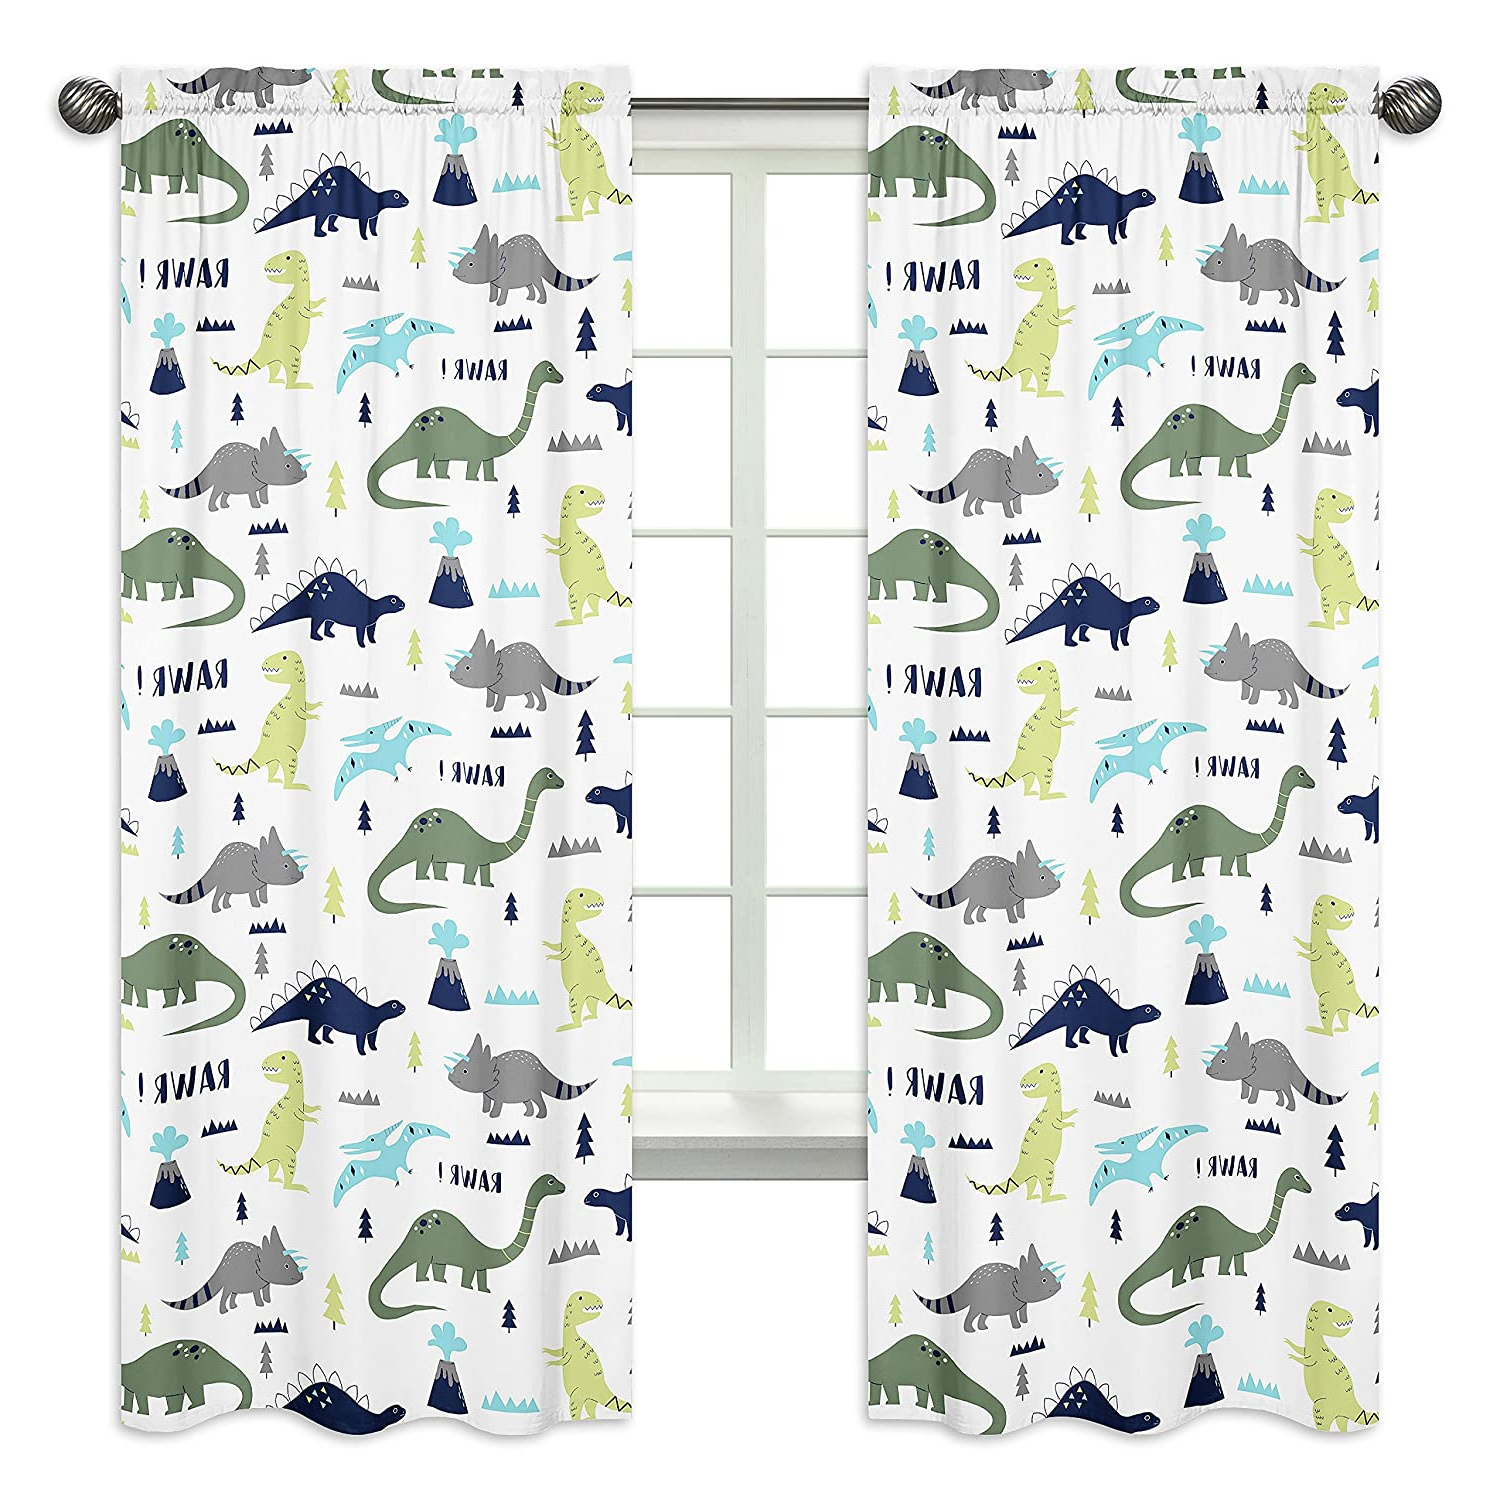 Blended Fabric Mod Dinosaur 3 Piece Wall Hangings Set For Well Liked Blue And Green Modern Dinosaur Bedroom Decor Window Treatment Panels – Set Of (View 2 of 20)